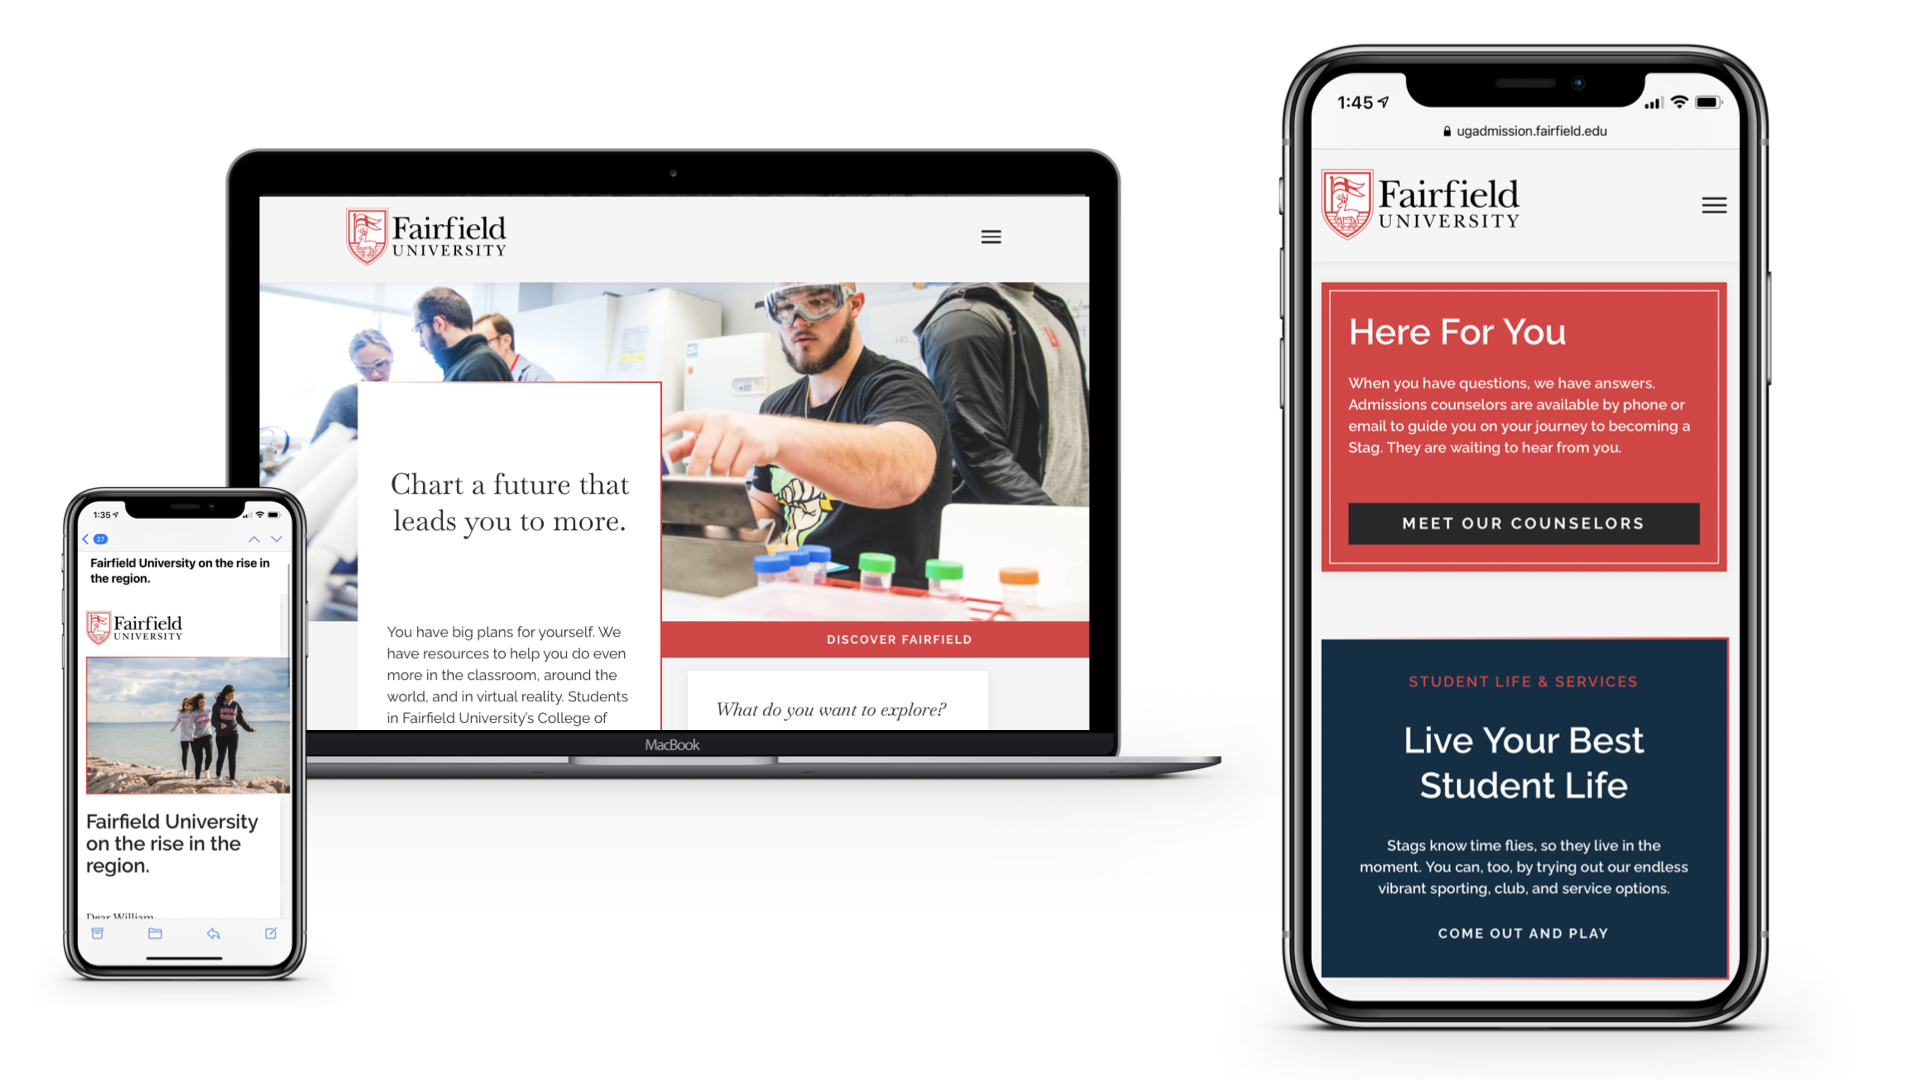 This is an image of Fairfield Universities email and portals in Slate.